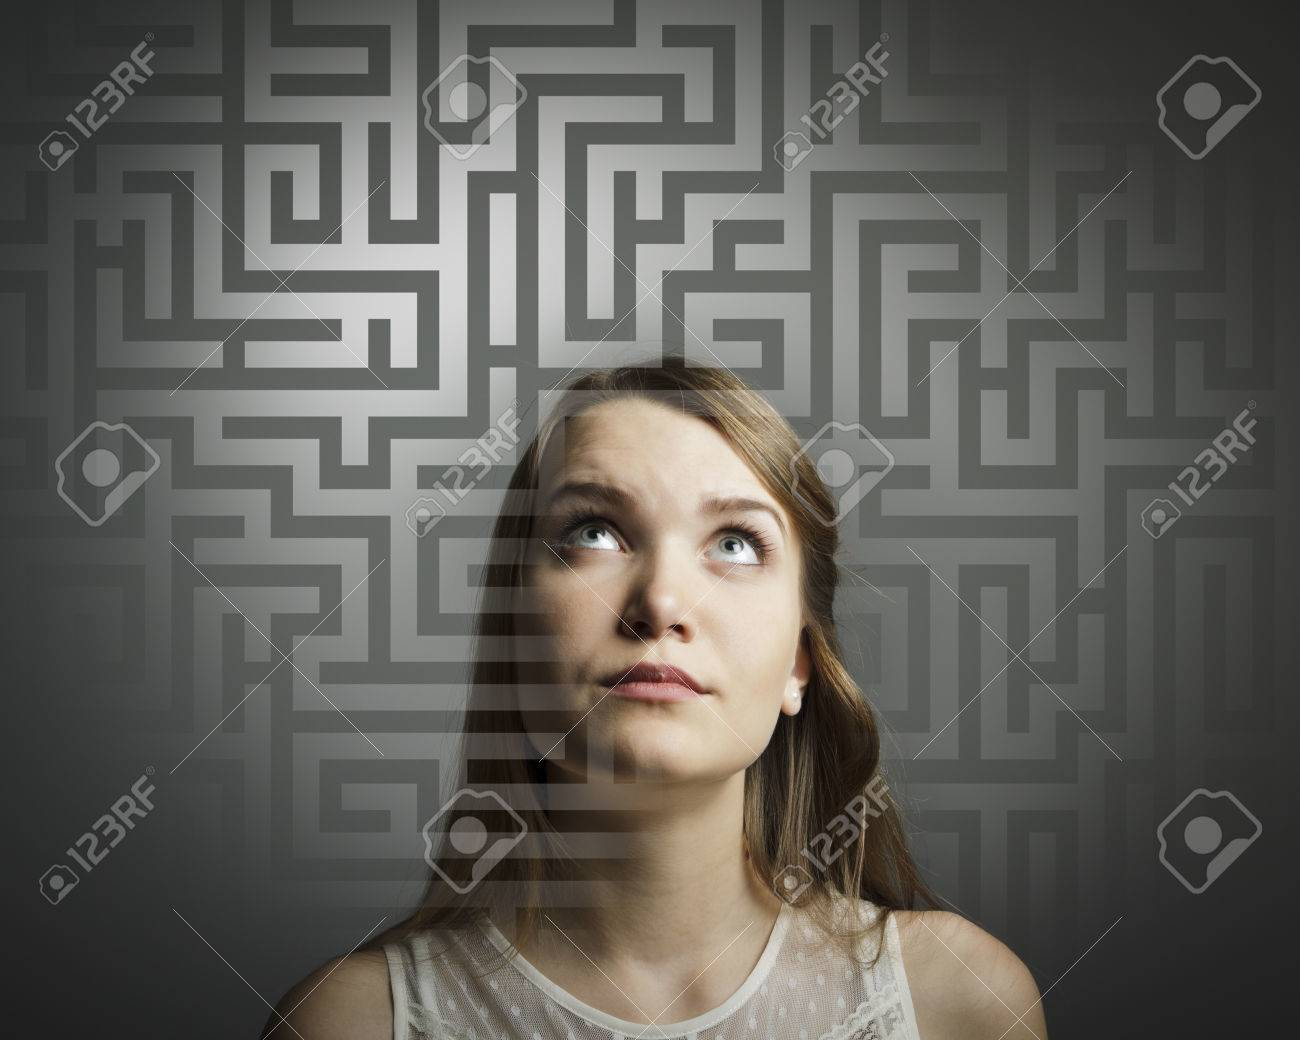 Girl in white full of doubts and hesitation Girl looking for the solution - 24831733